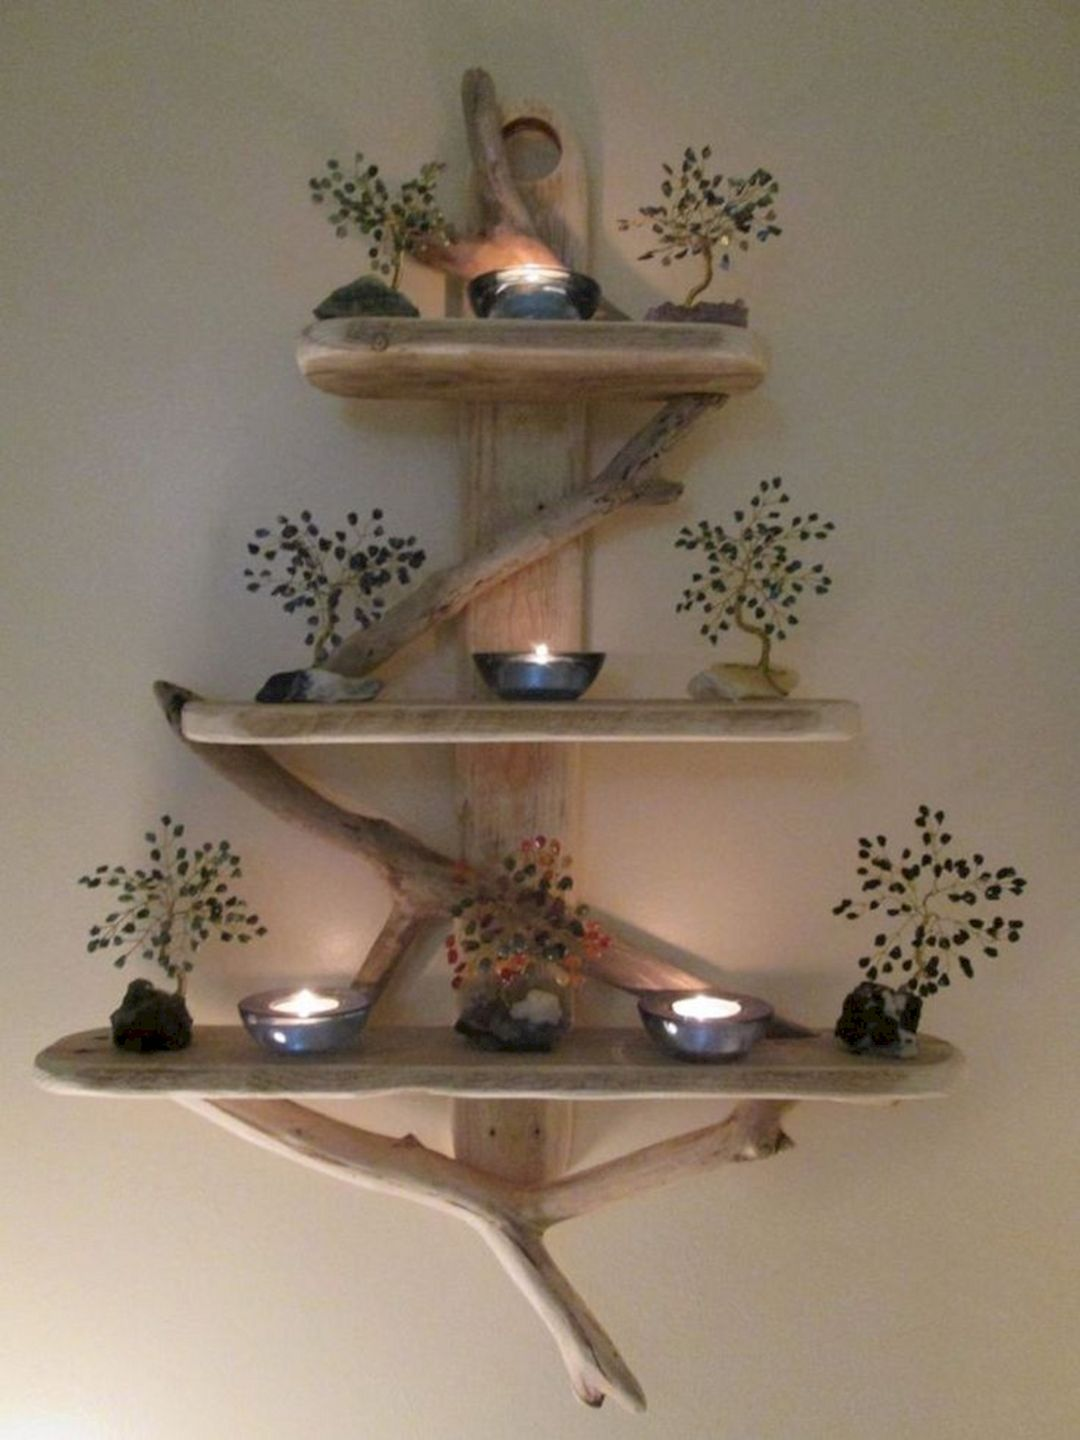 15 unique diy rustic wall shelf ideas for awesome home